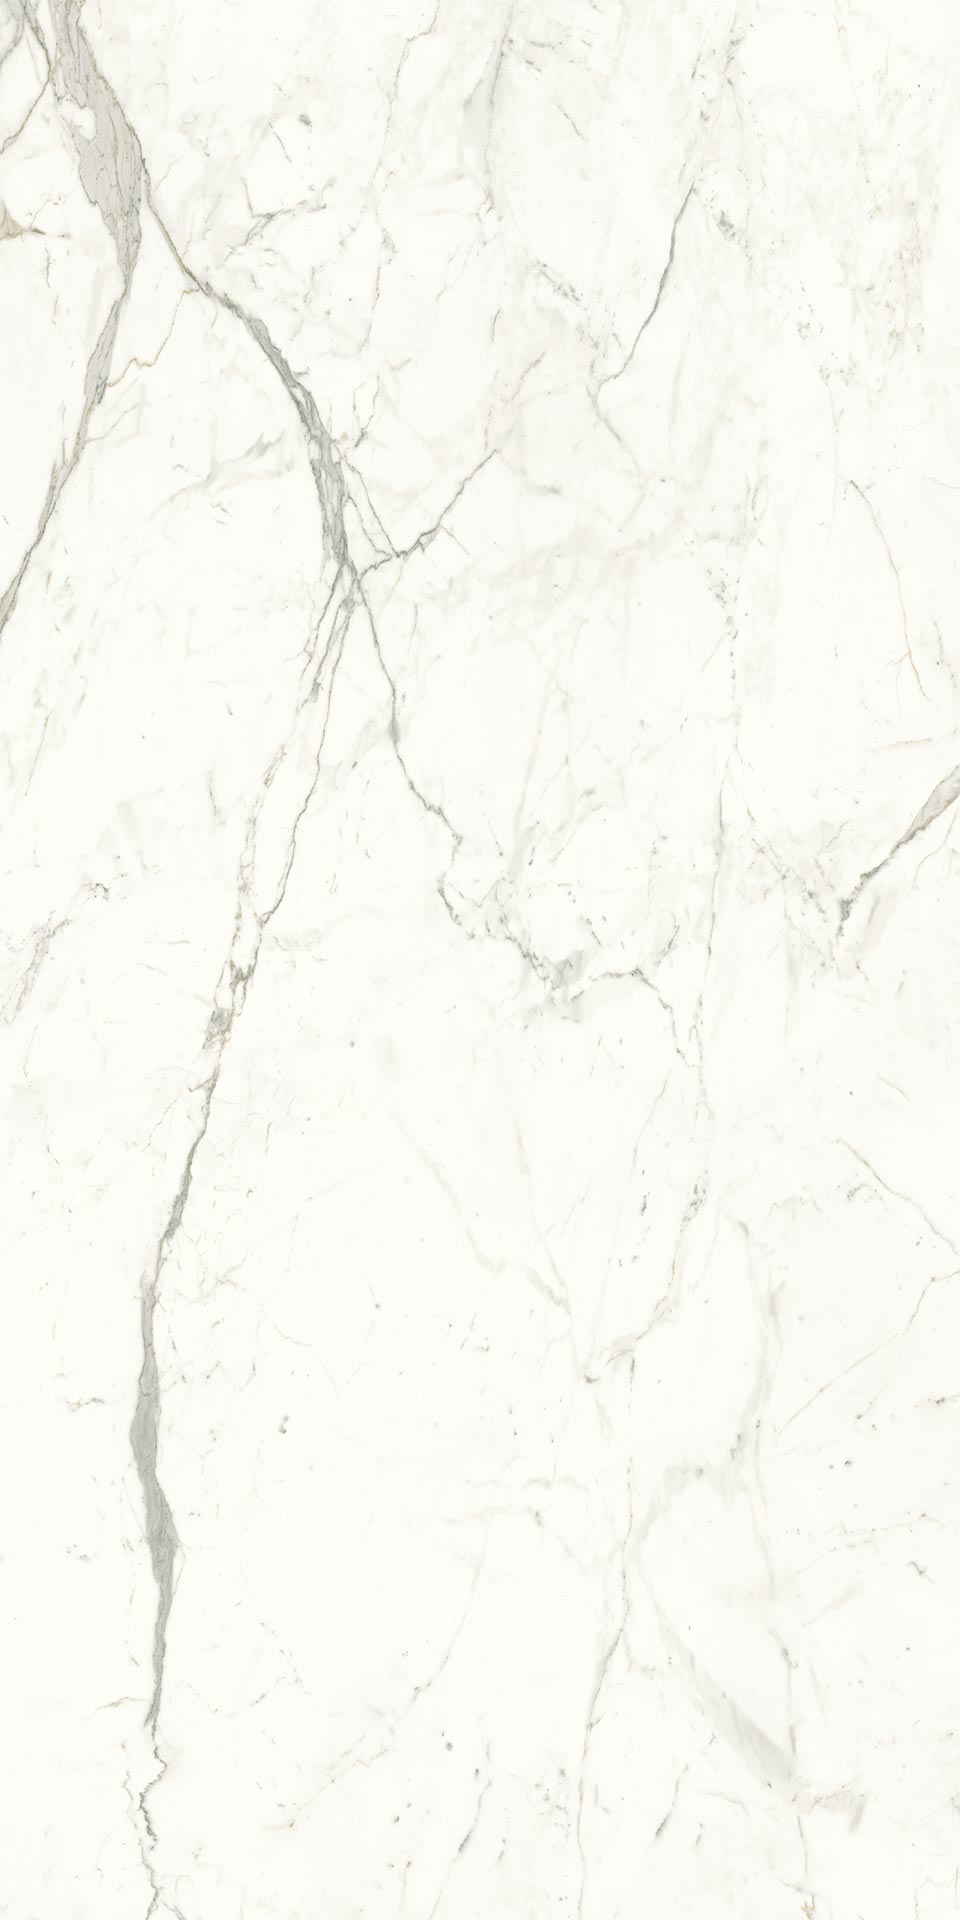 120x240-6-atlas-plan-apuan-marble-effect-large-polished-tile